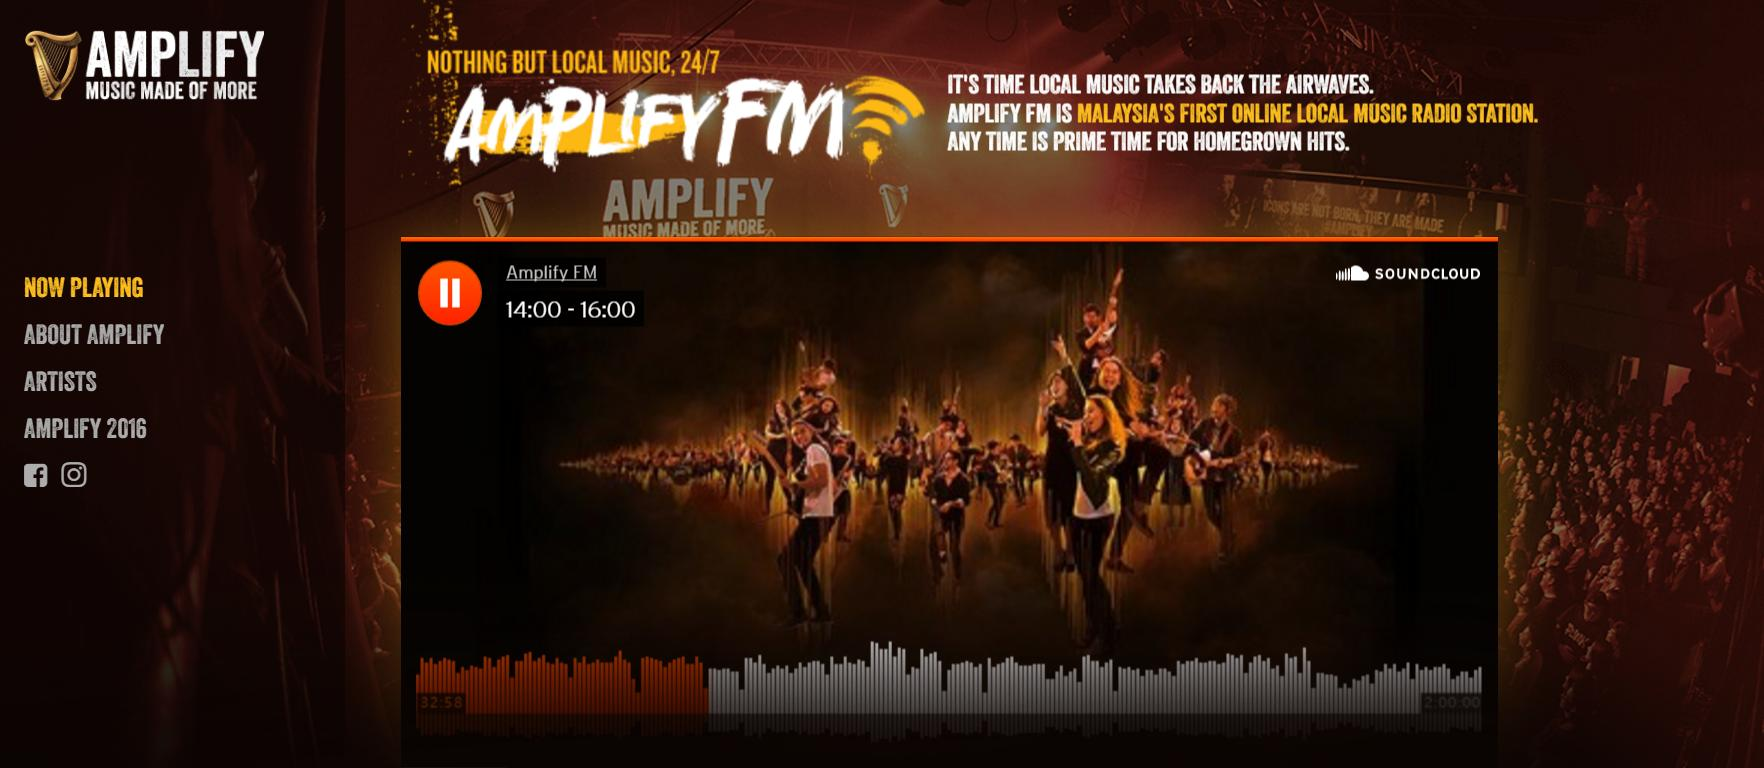 Image from Amplify FM